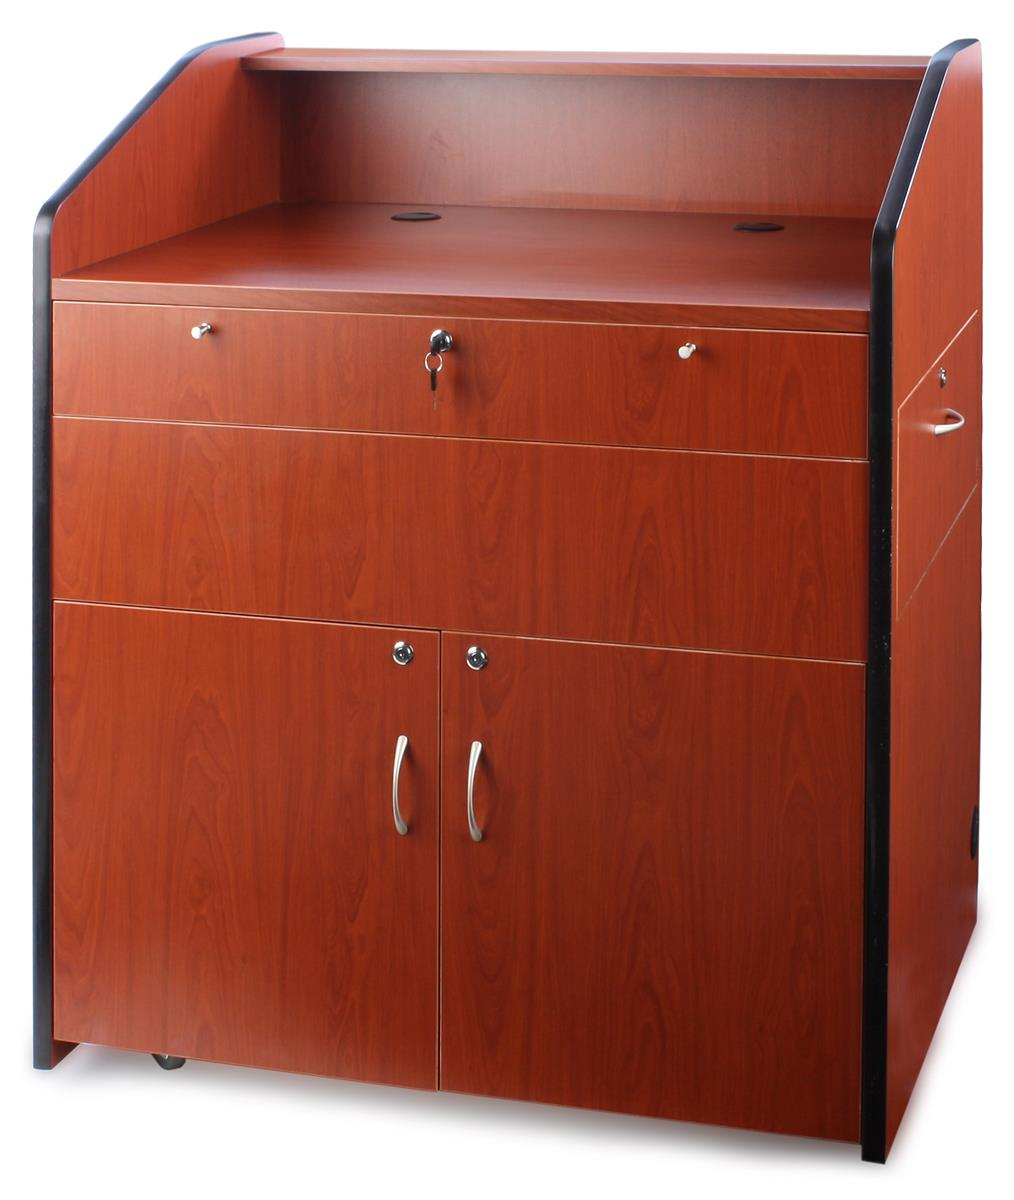 Locking Lecterns For Storage And Organization